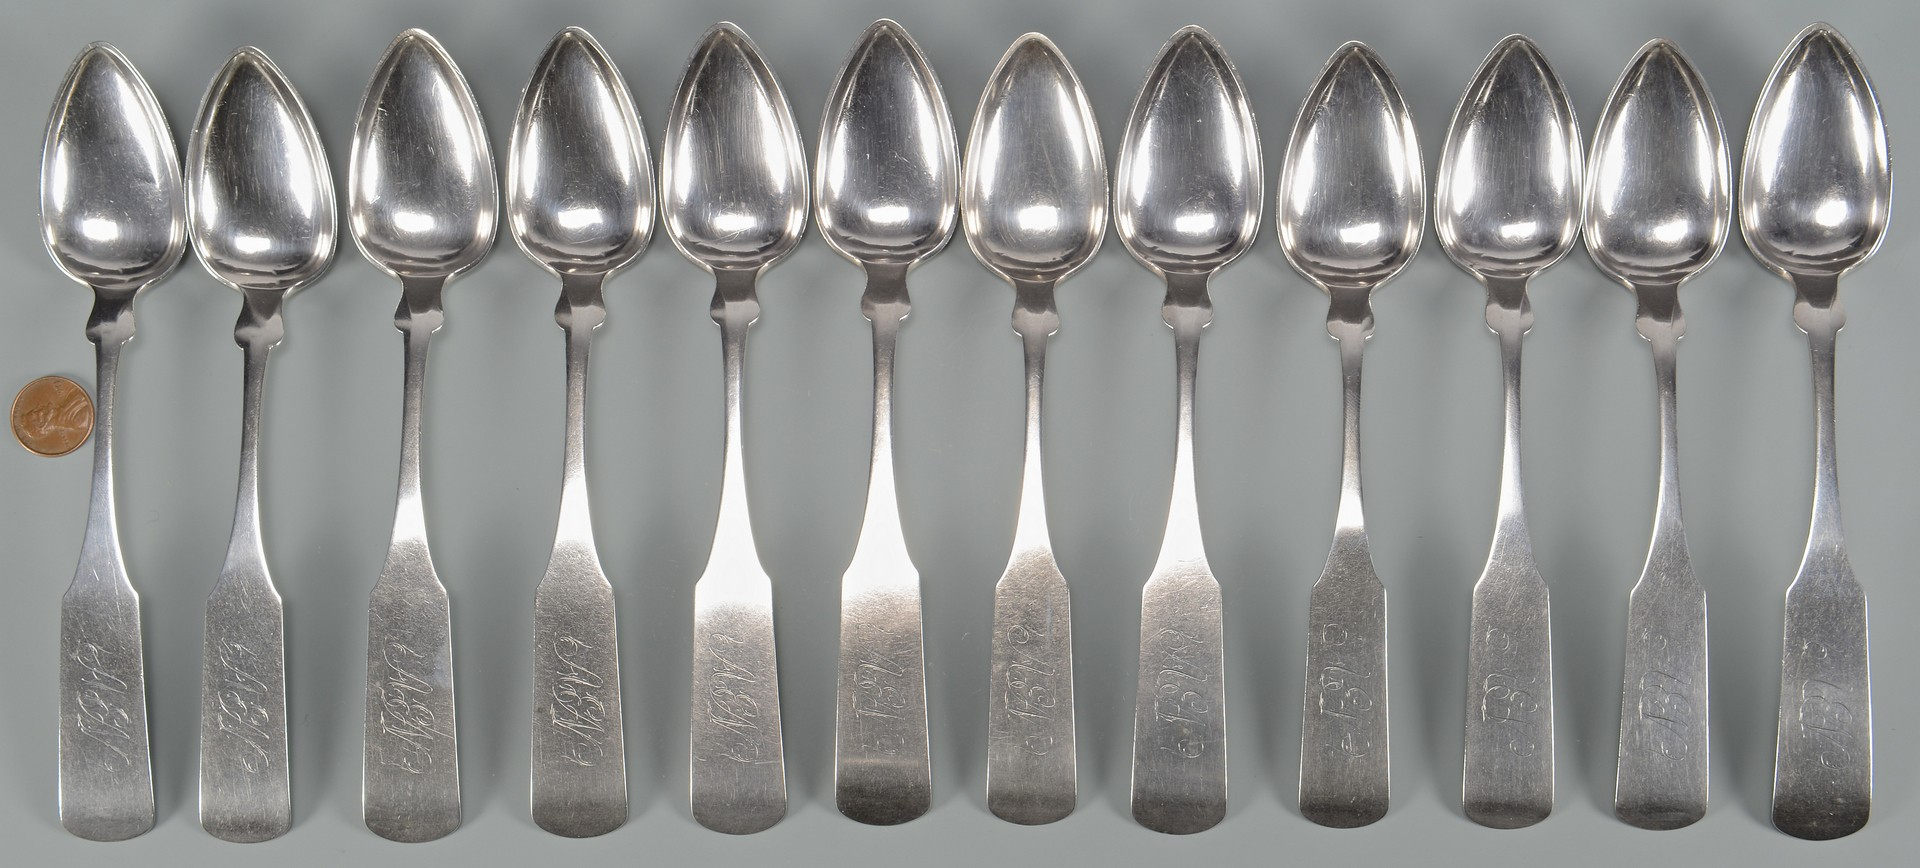 Lot 54: 12 Bell Coin Silver Spoons, Knoxville